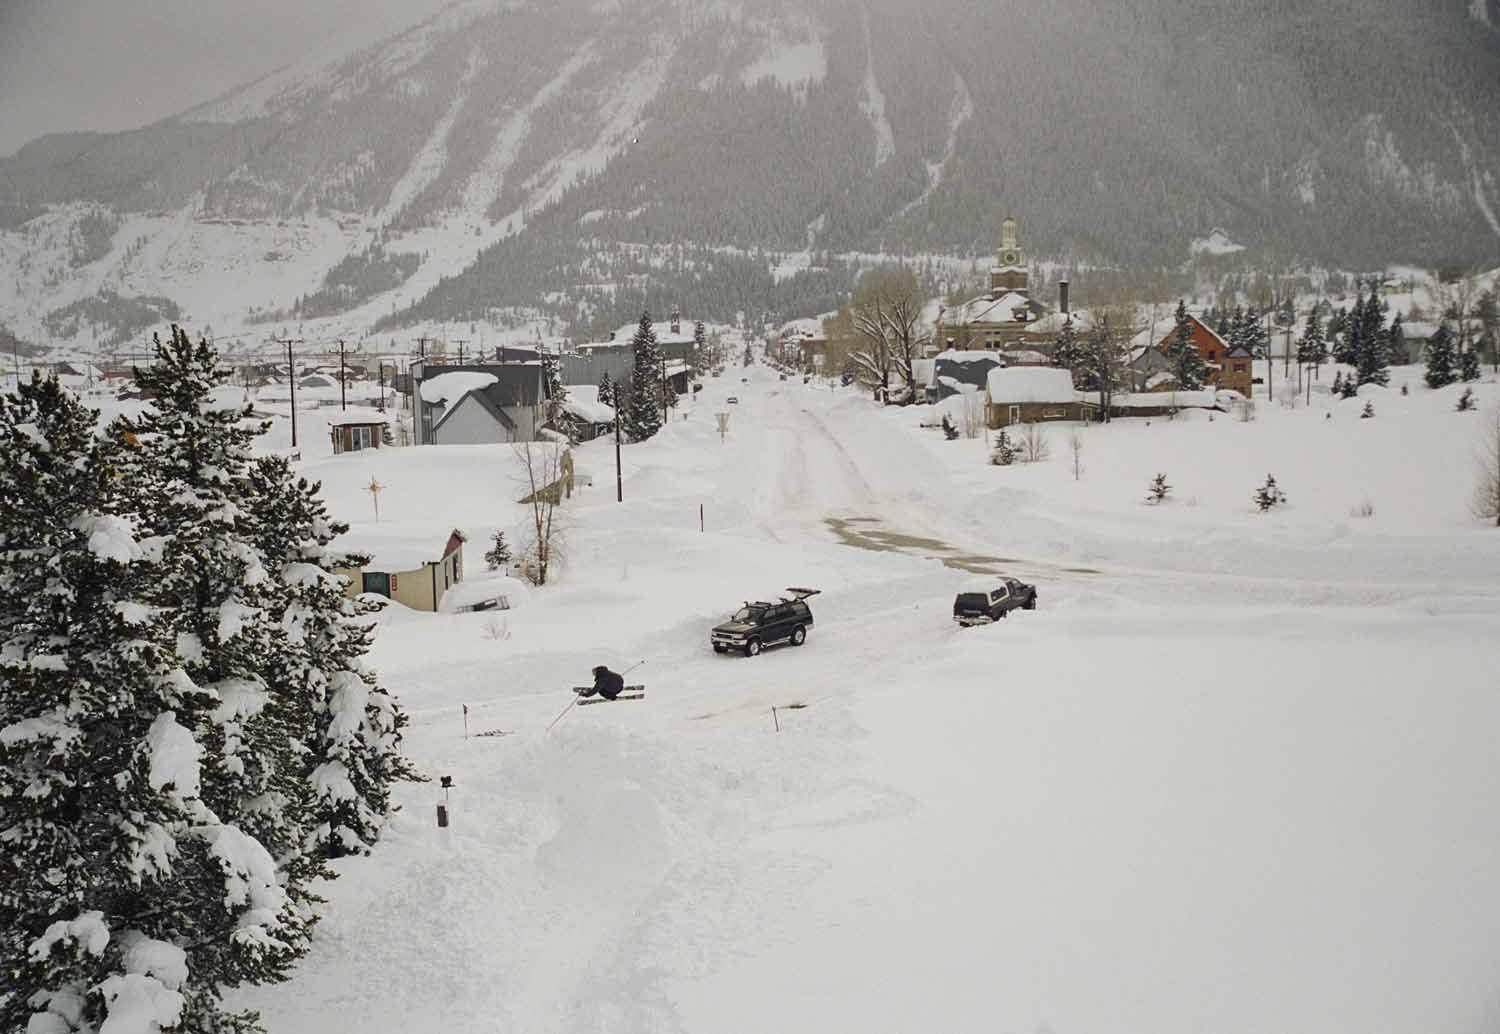 Jump in town of Silverton, CO